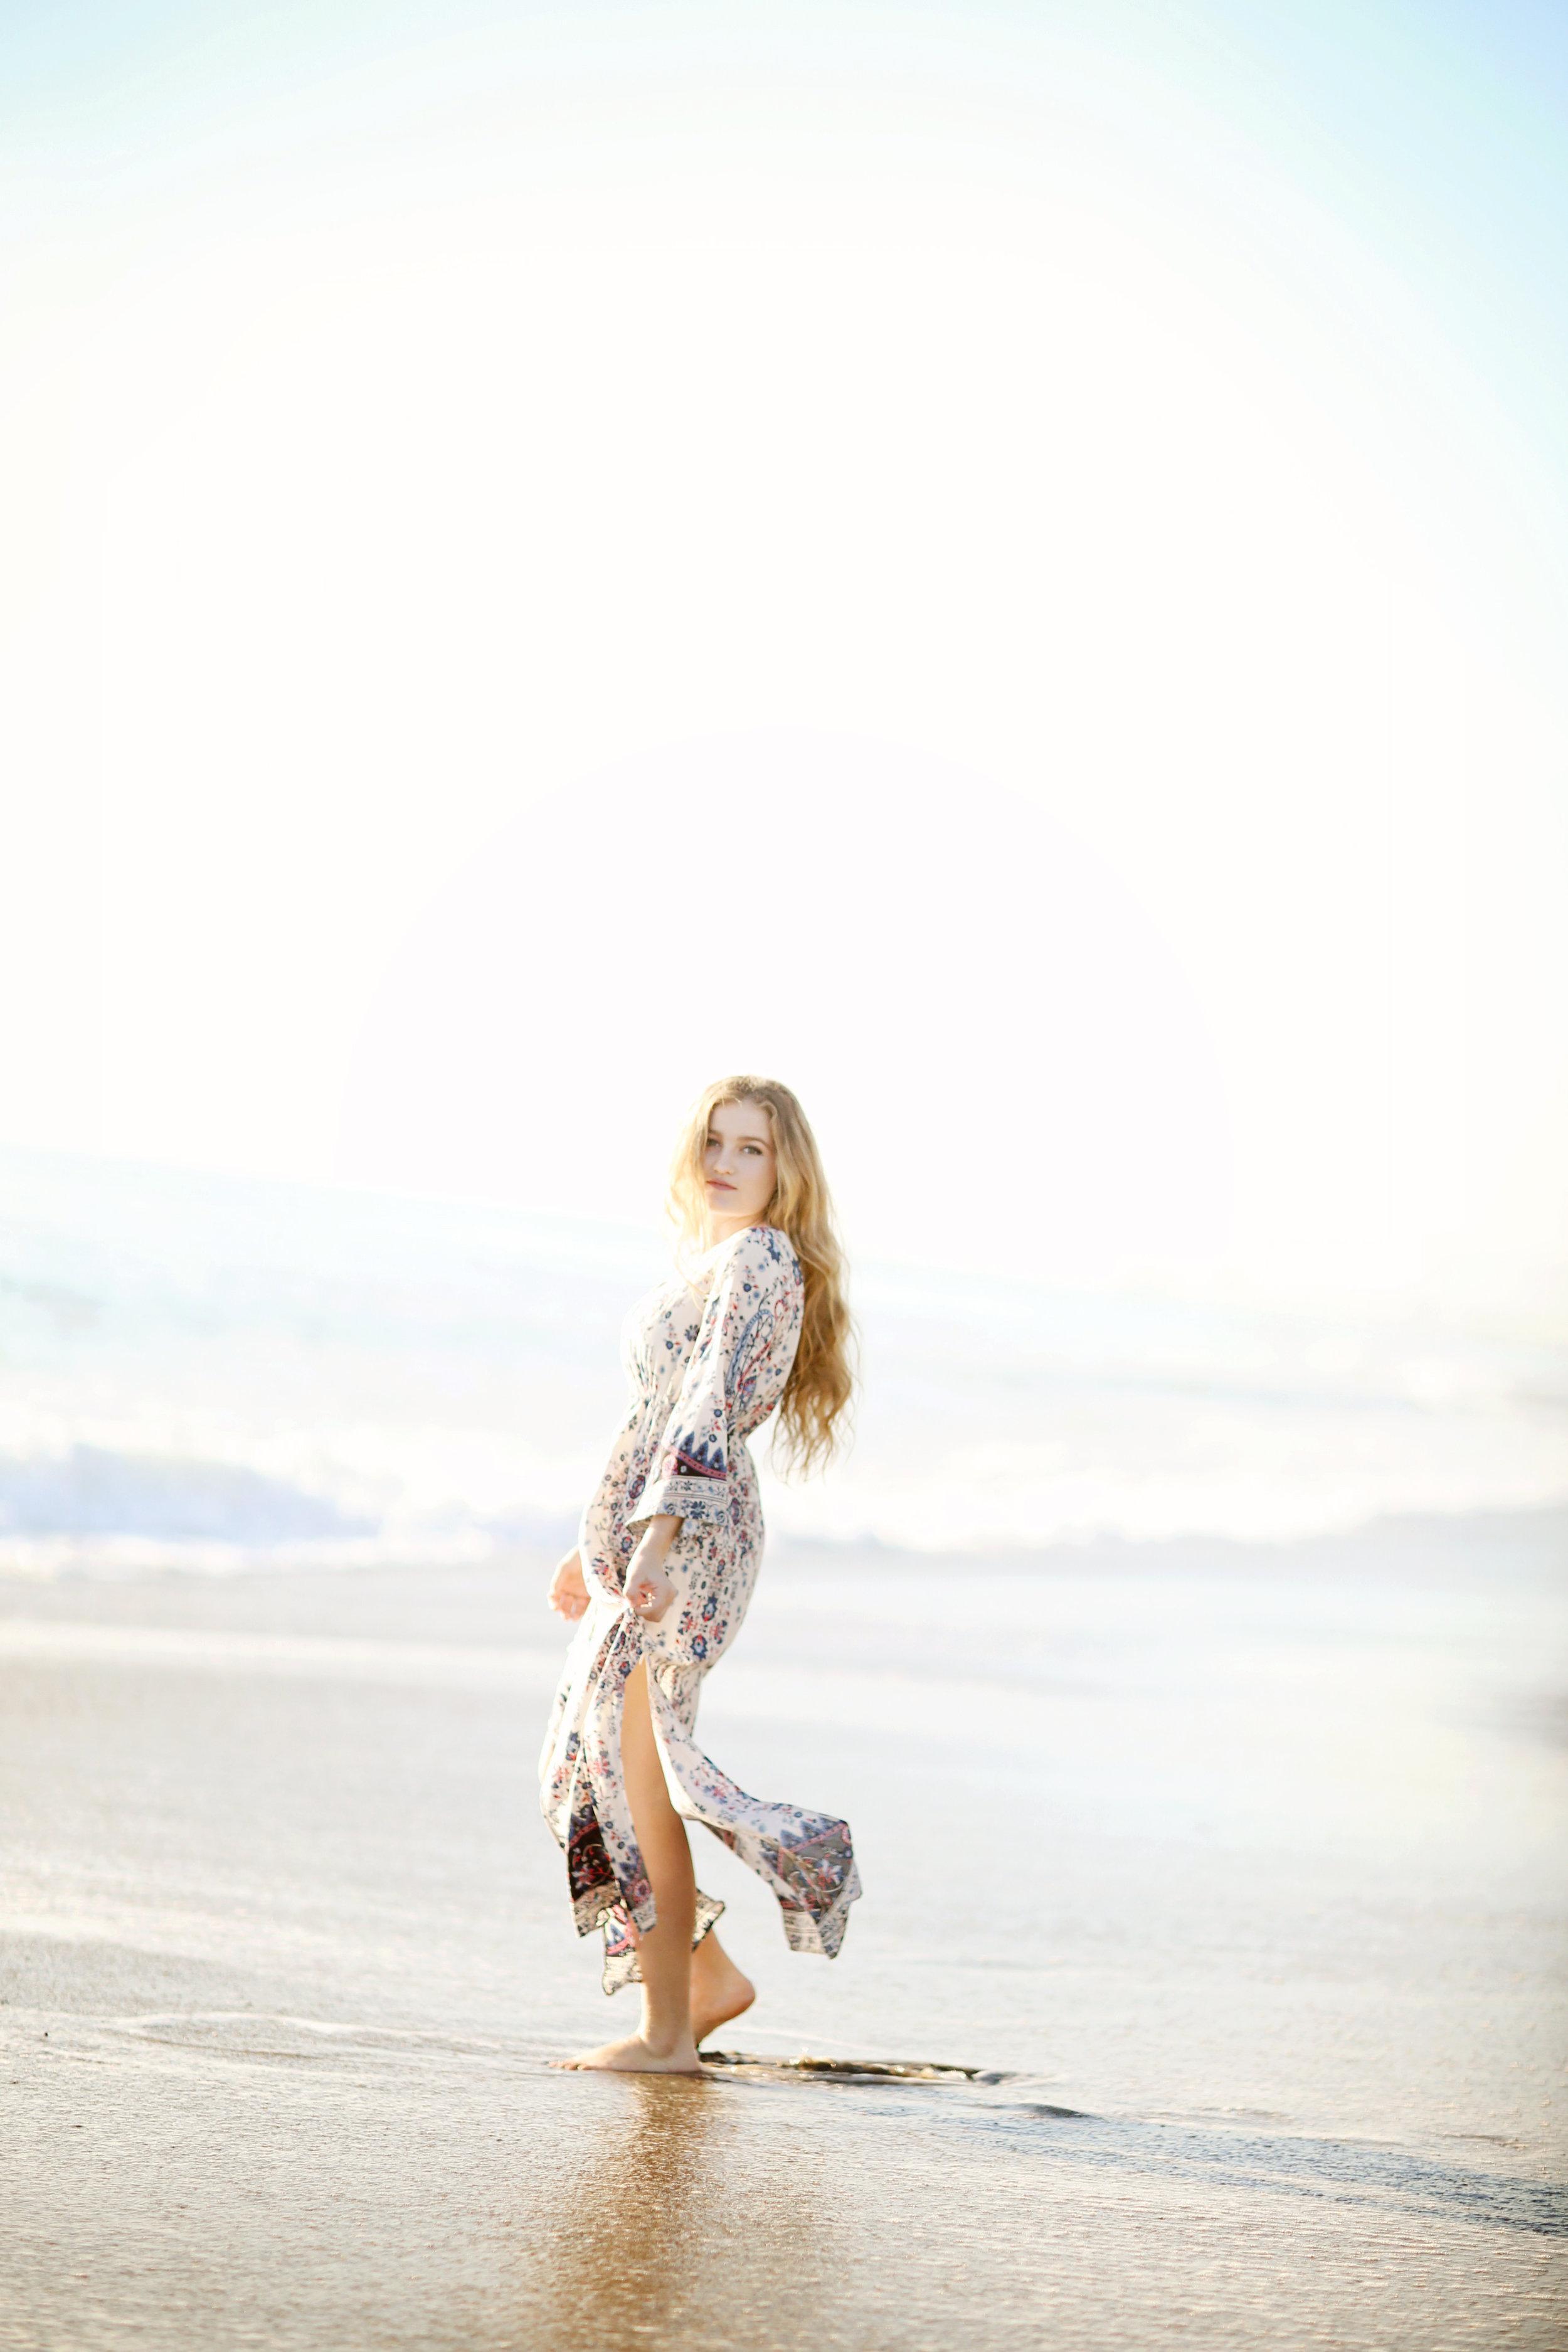 Graduation portrait at the beach. Young girl with flowing dress and long hair.